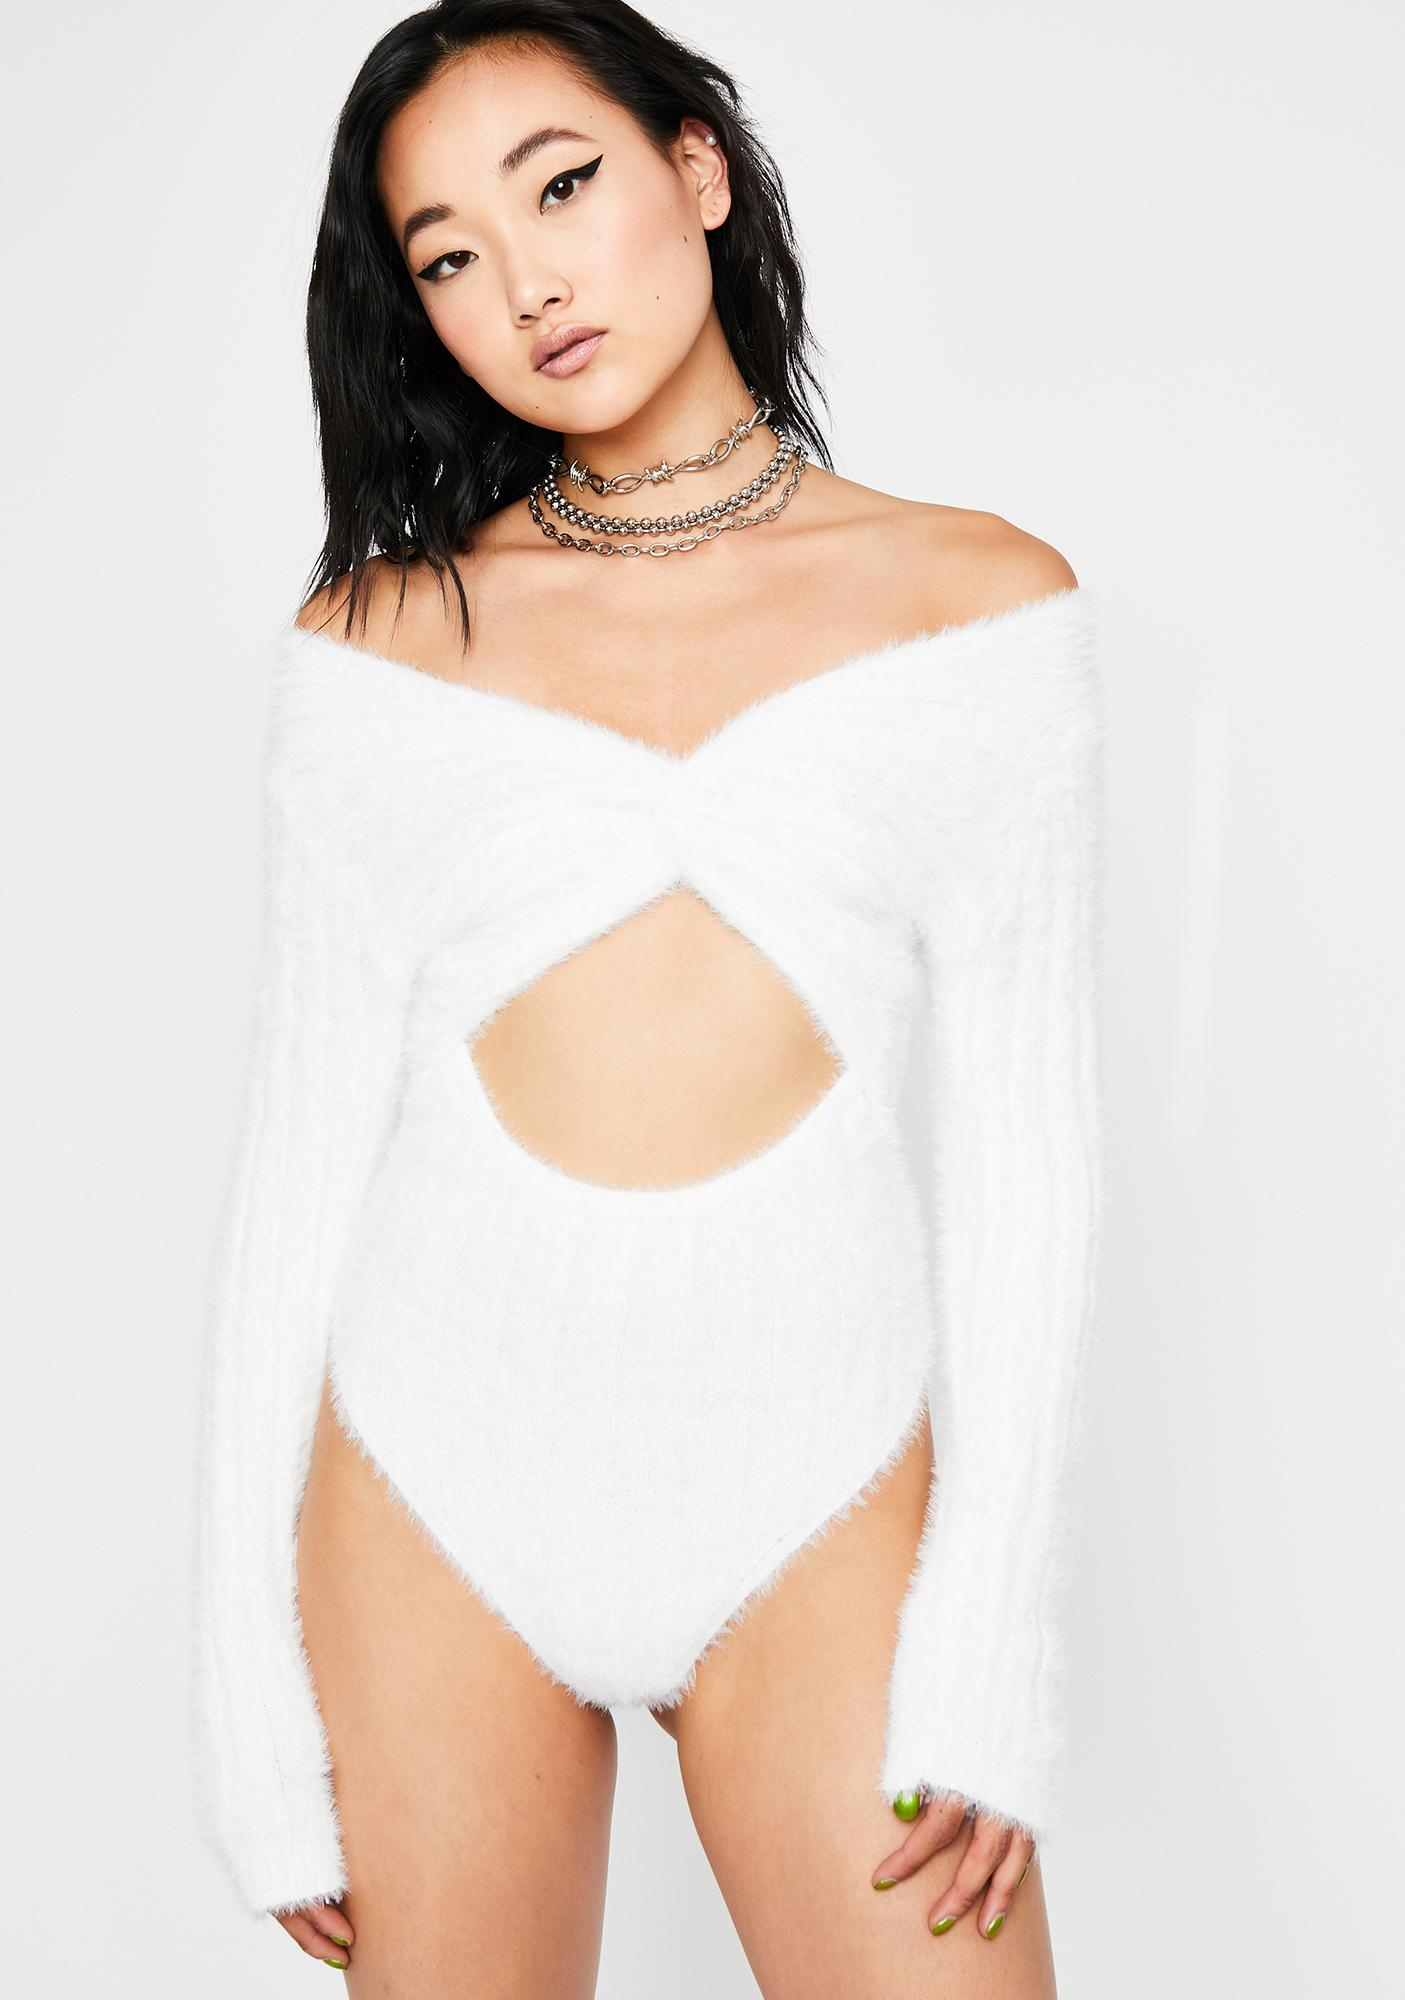 Icy Coldhearted Lover Cut Out Bodysuit